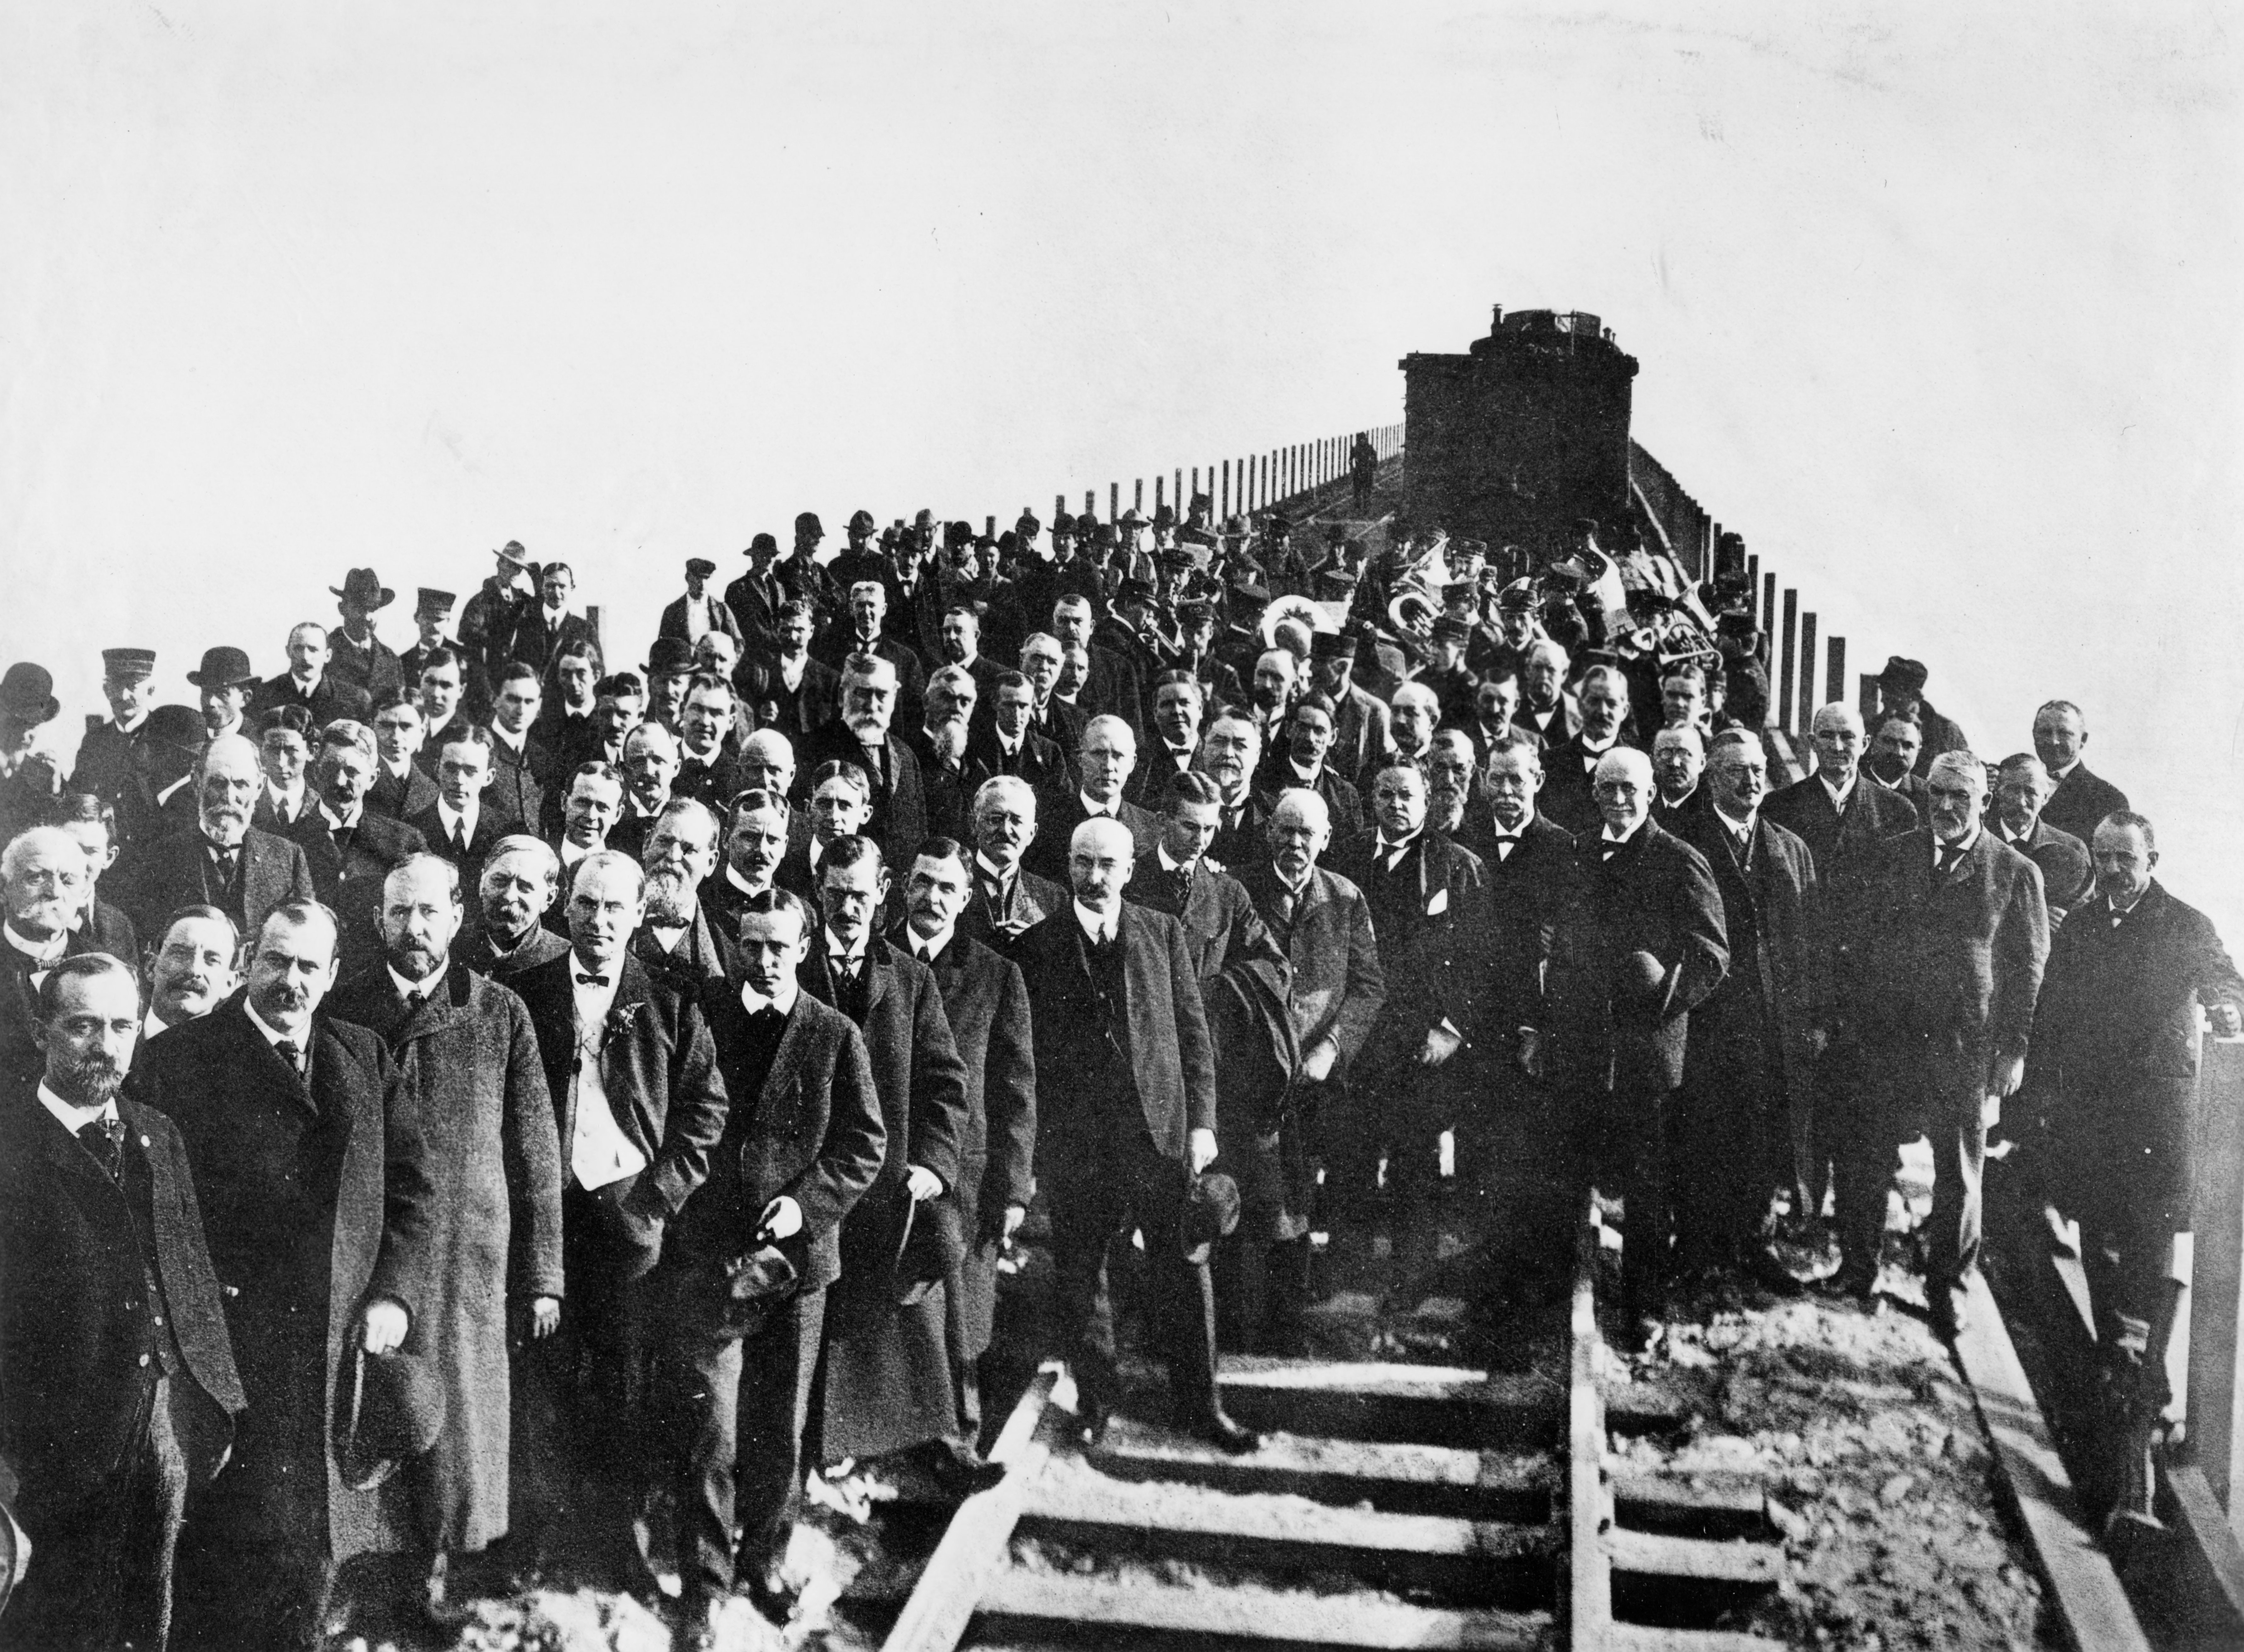 Officials pose for a photograph at the celebration of the completion of Lucin Cutoff on Thanksgiving, Nov. 26, 1903.